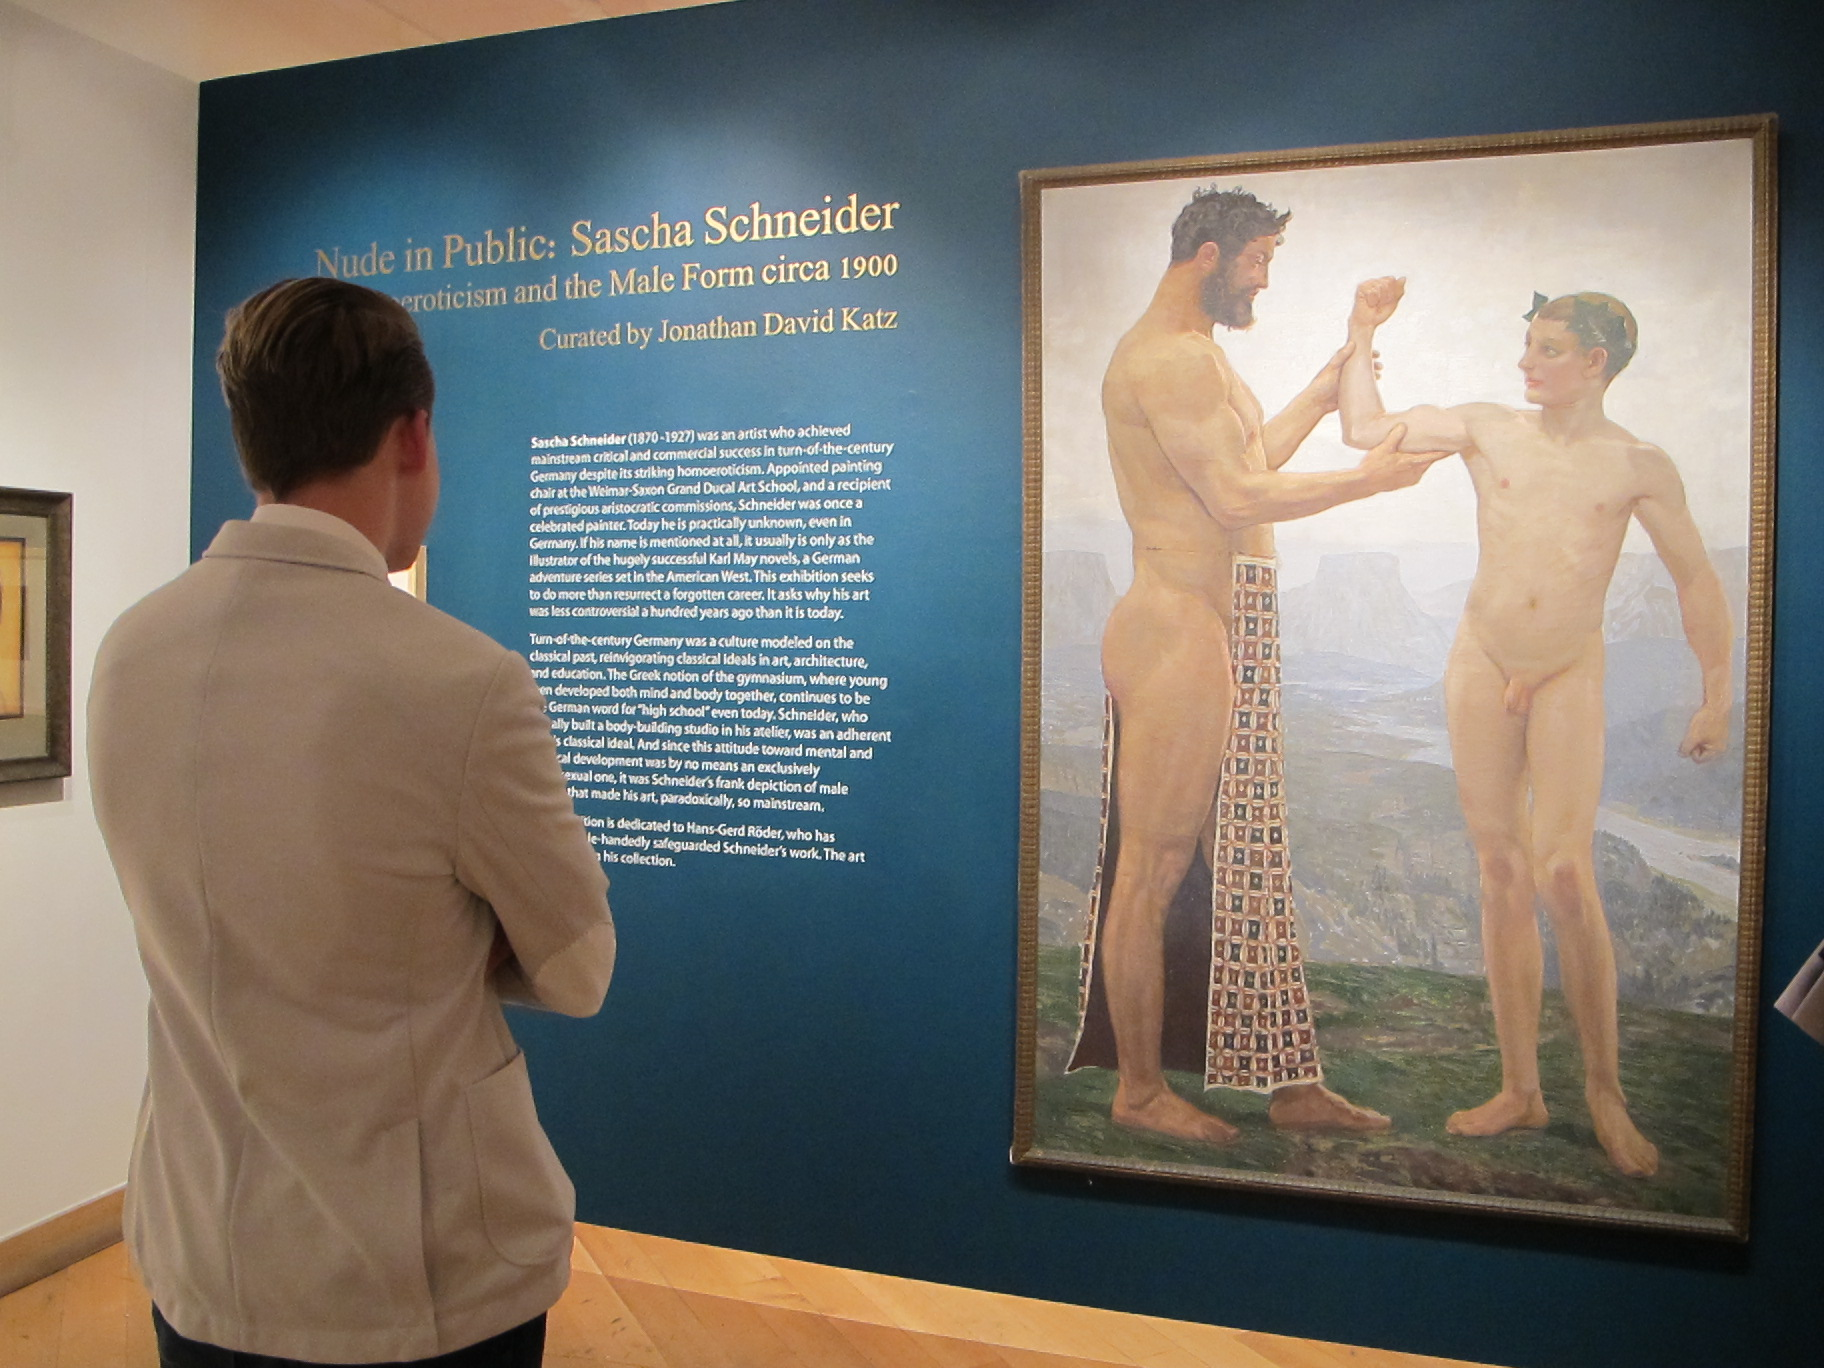 Nude in Public: Sascha Schneider, Homoeroticism and the Male Form circa 1900